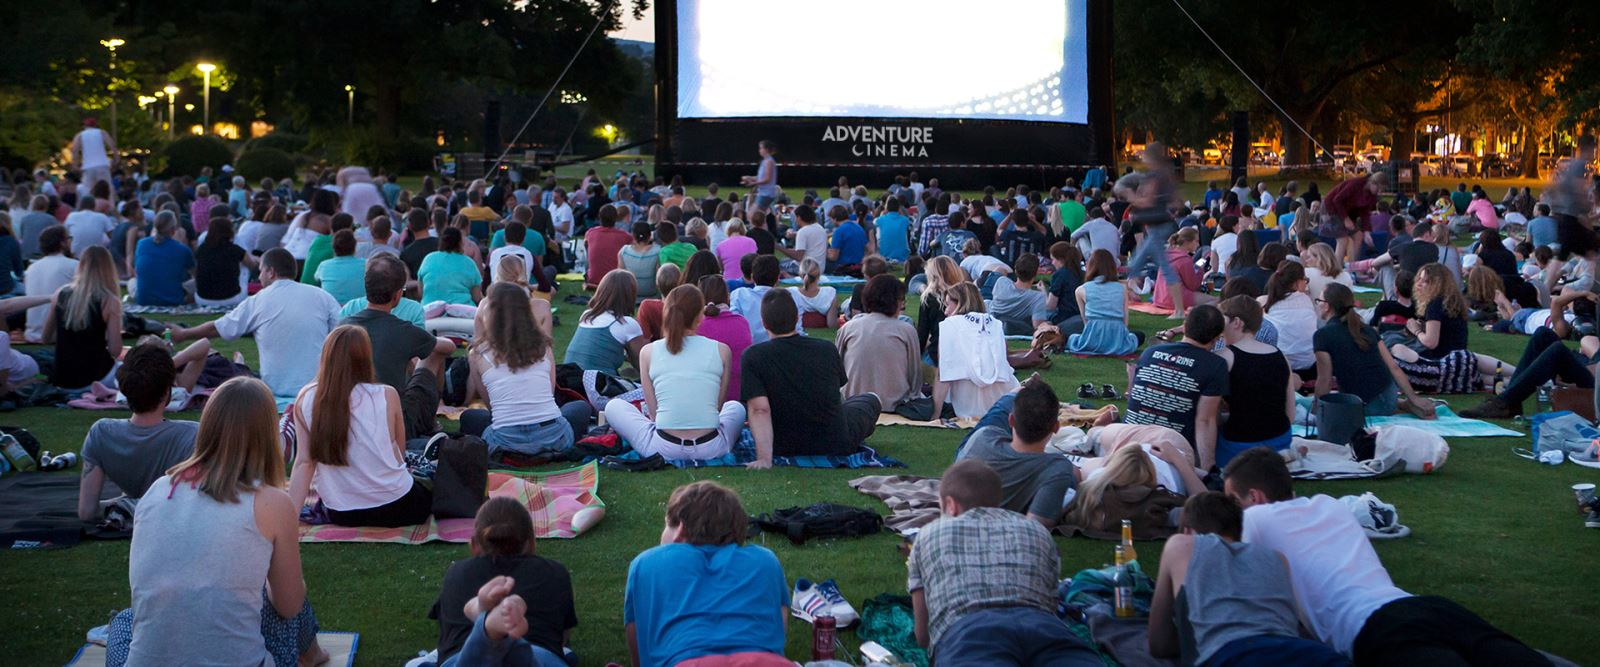 Outdoor Cinema Events with Advnture Cinema